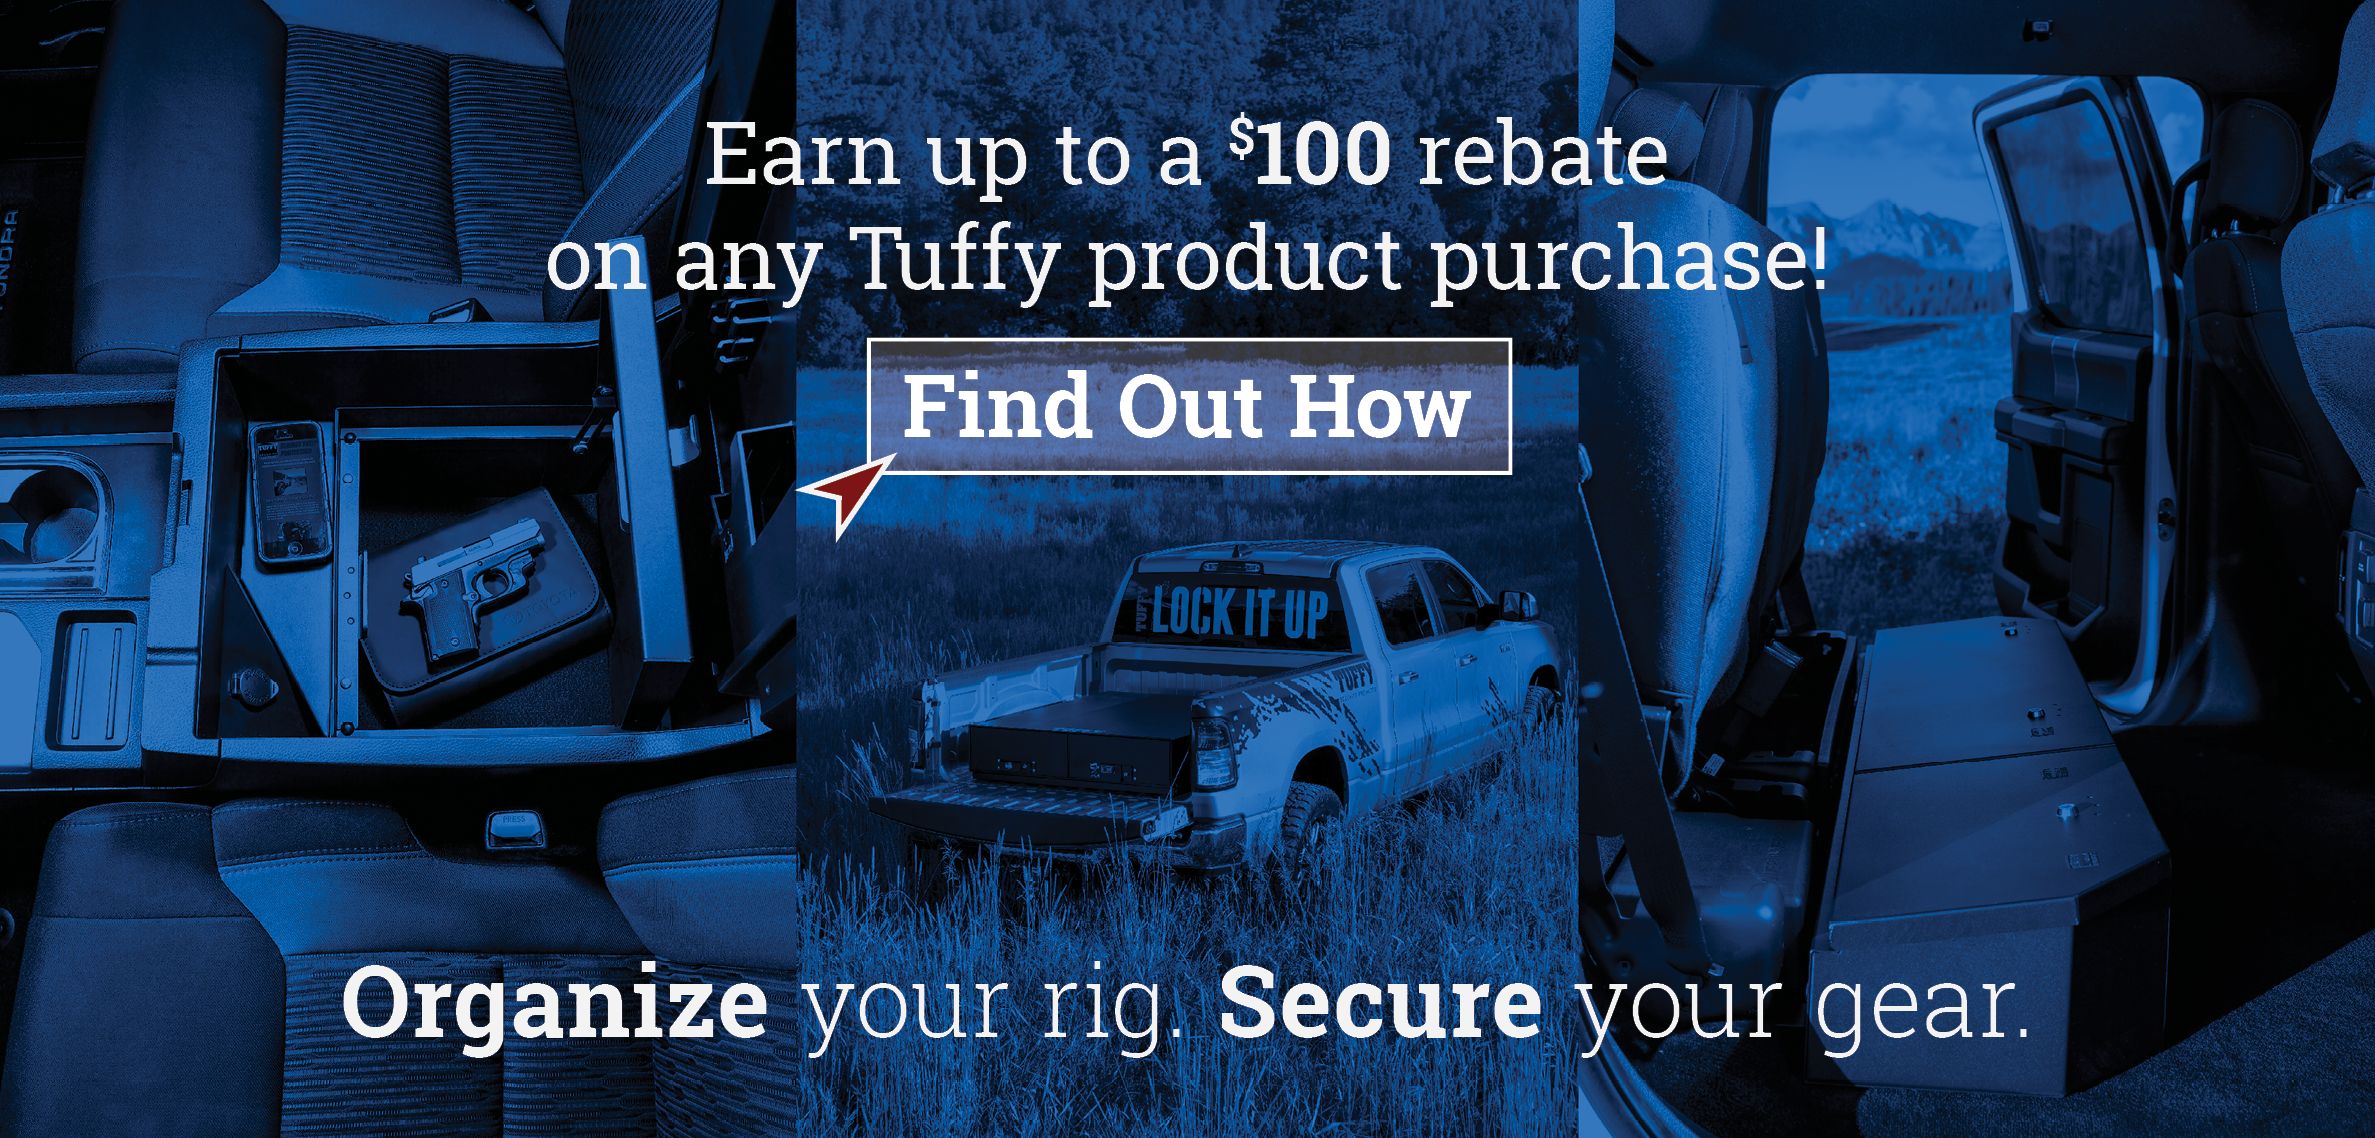 Tuffy Visa® Prepaid Card.